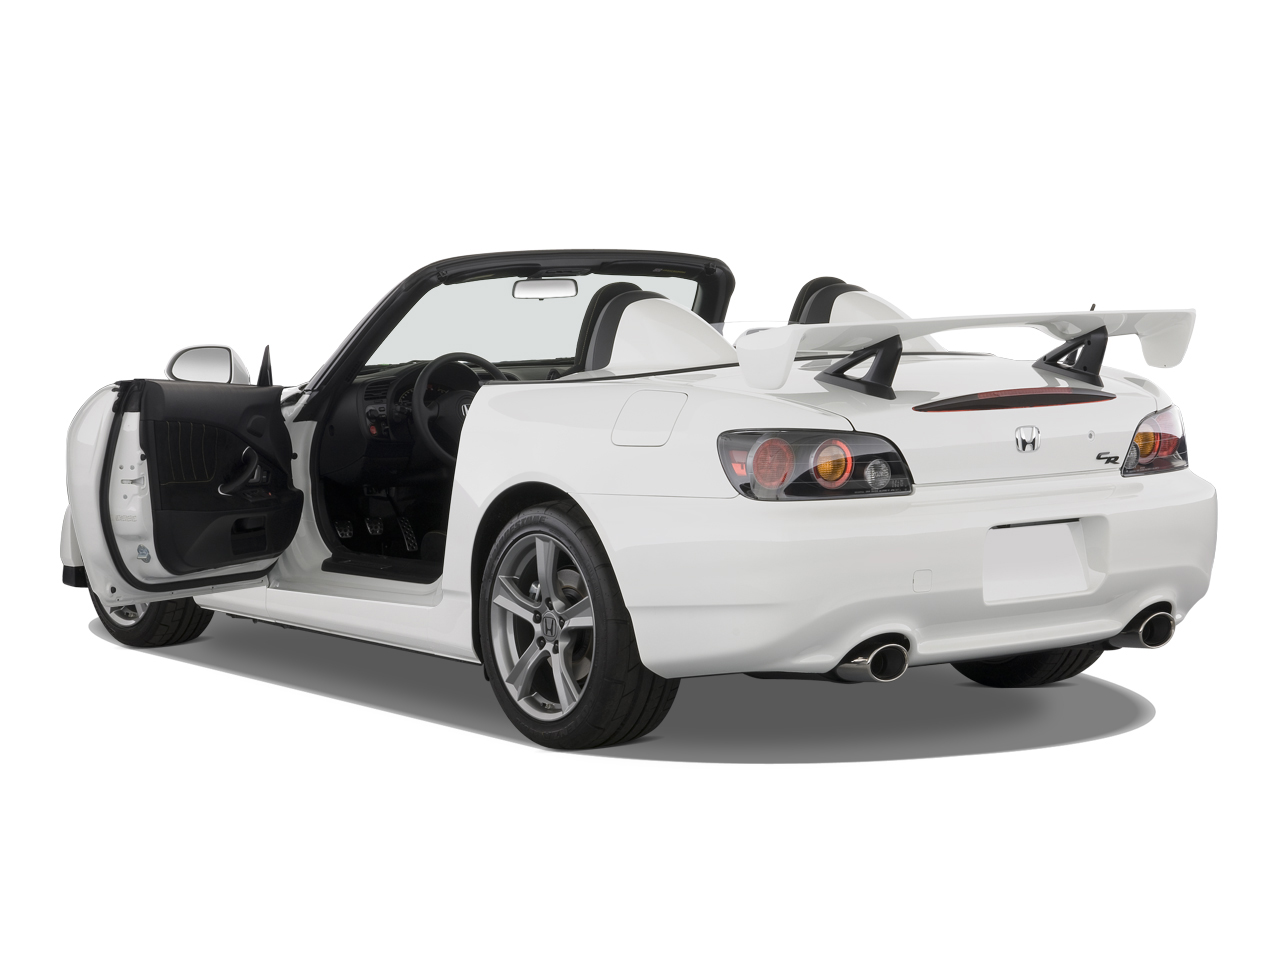 2009 Honda S2000 Cr Honda Roadster Sport Coupe Review Automobile